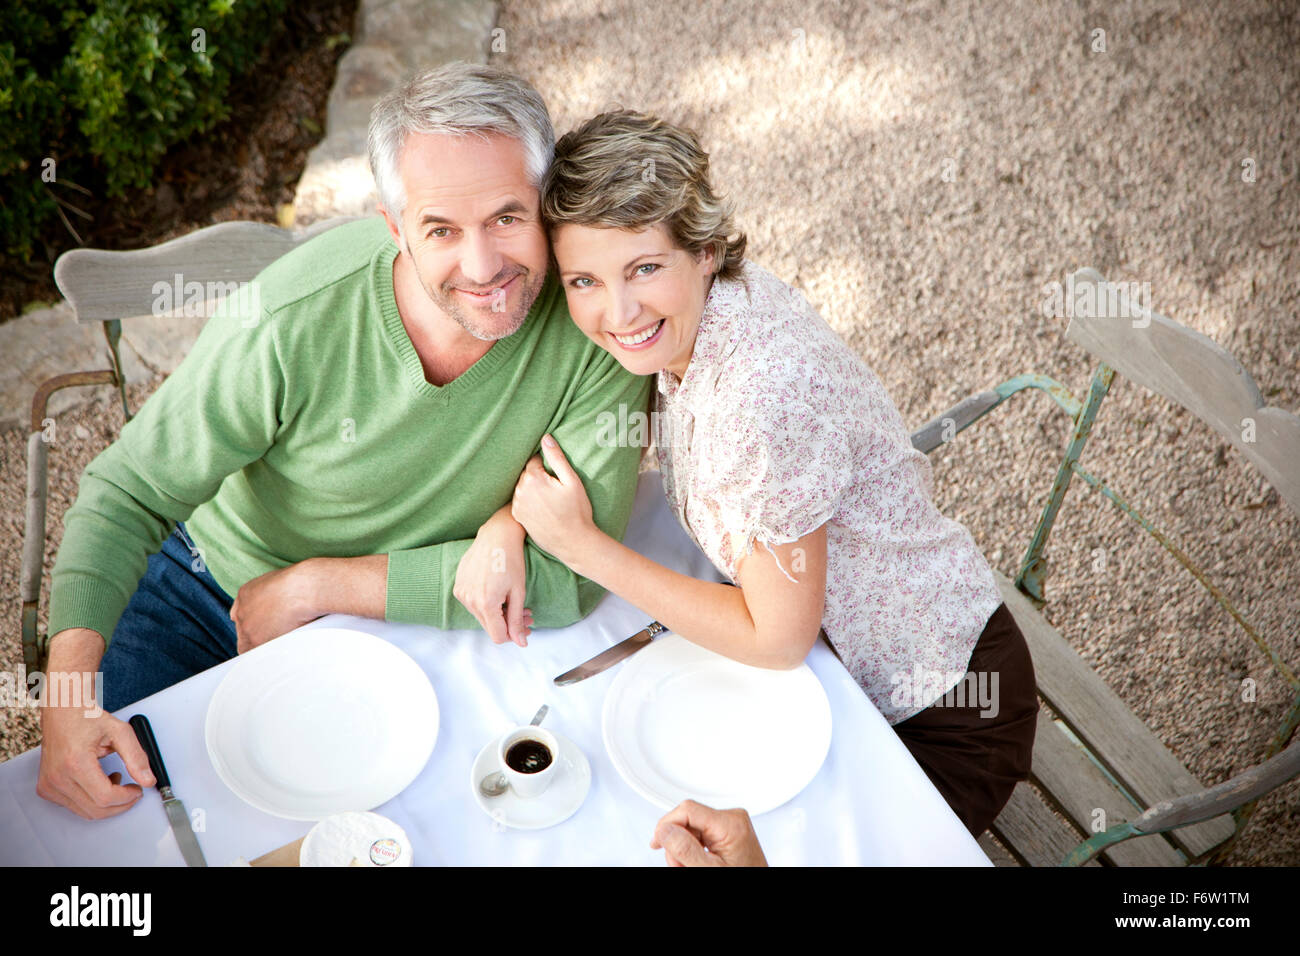 Portrait of smiling couple sitting at laid table in the garden looking up to camera - Stock Image